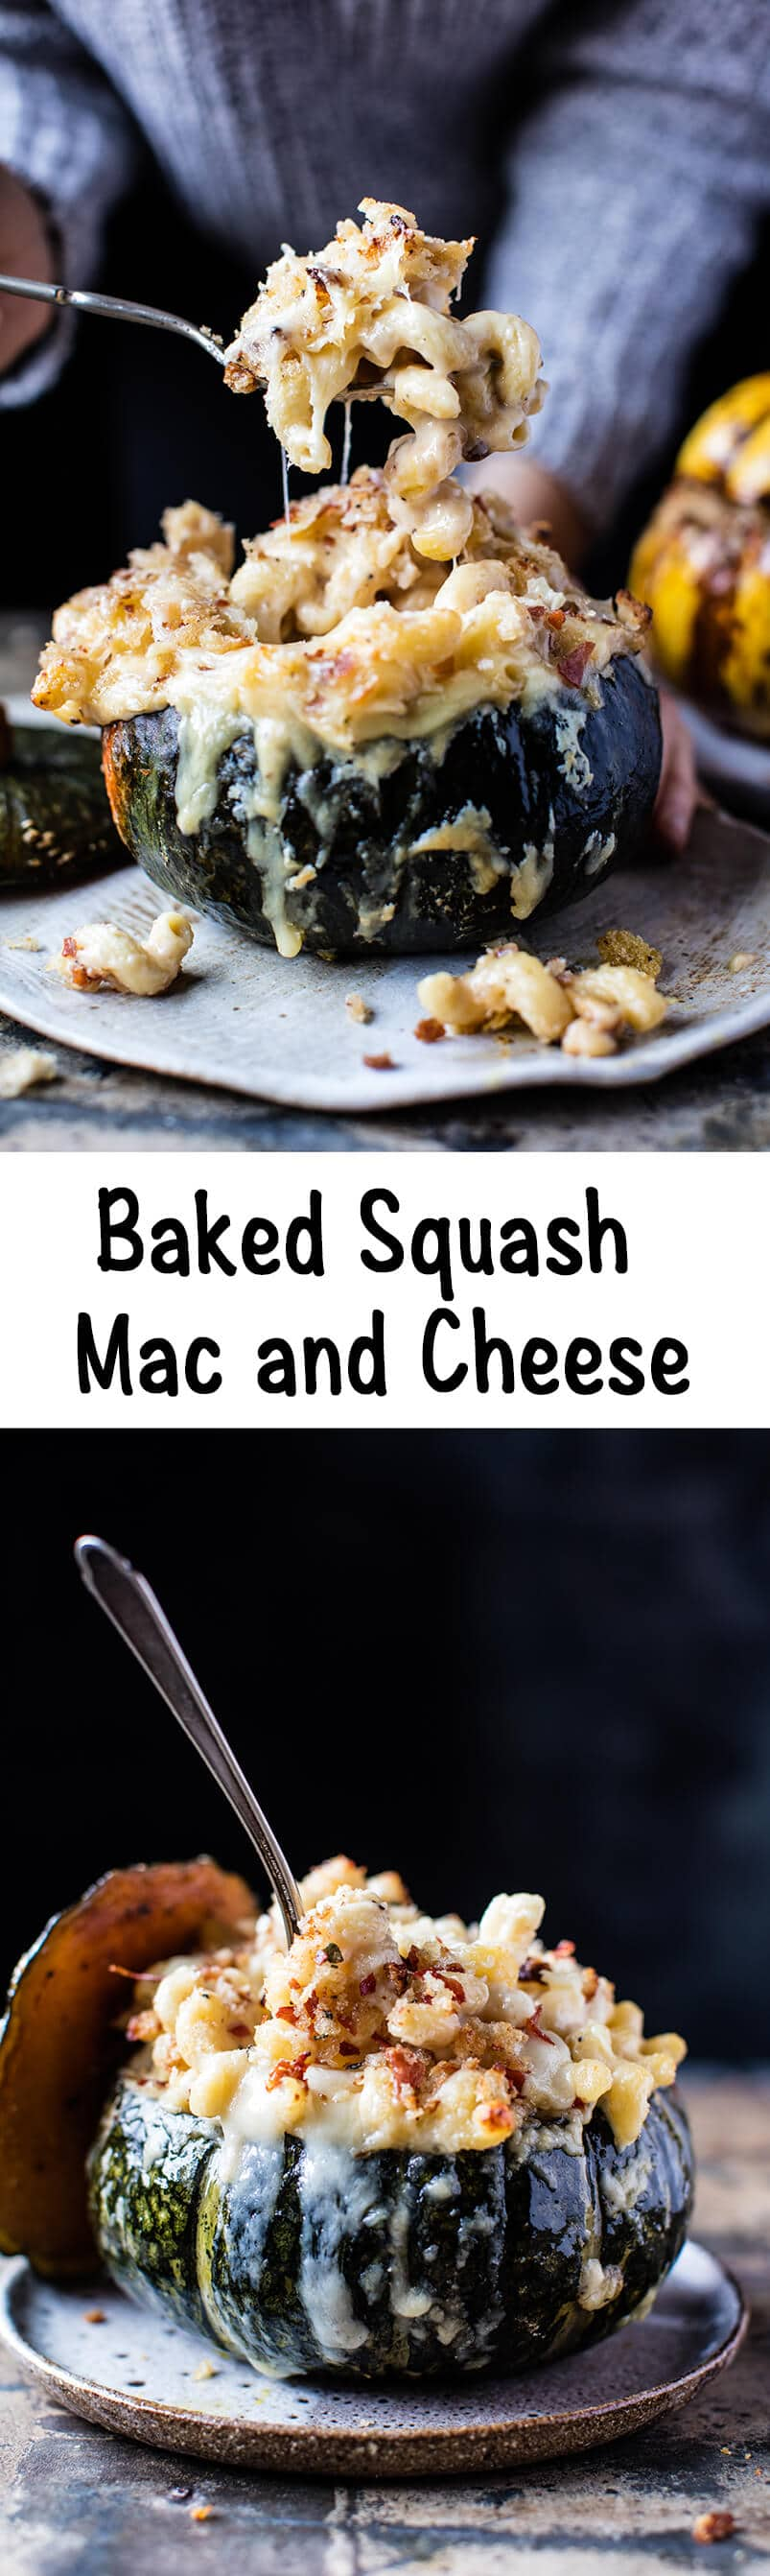 Baked Squash Mac and Cheese | halfbakedharvest.com @hbharvest